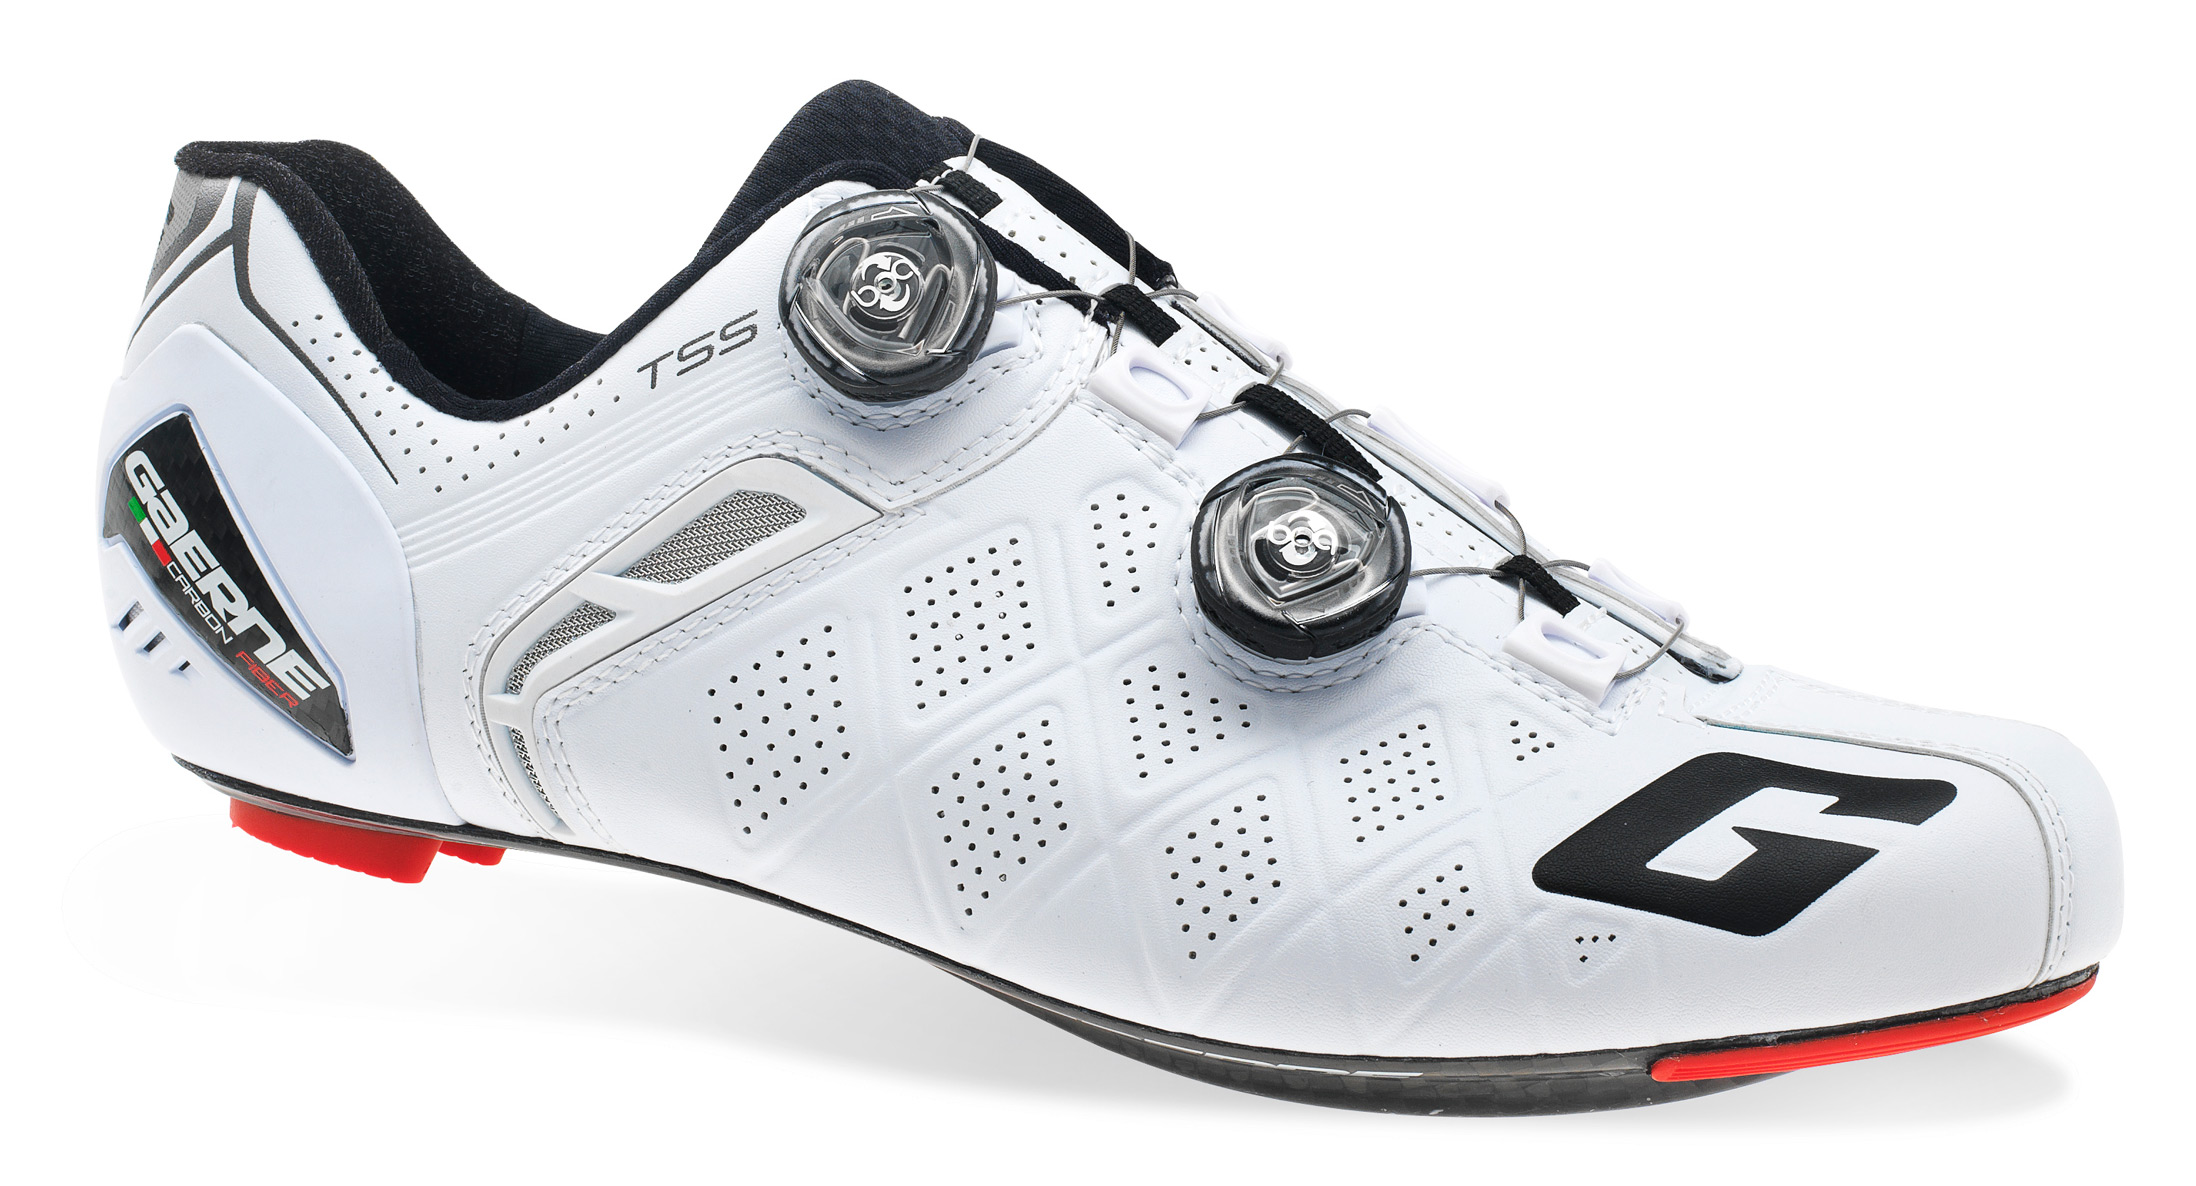 CYCLING SHOES GAERNE CARBON G.SINCRO MTB SUMMER SILVER